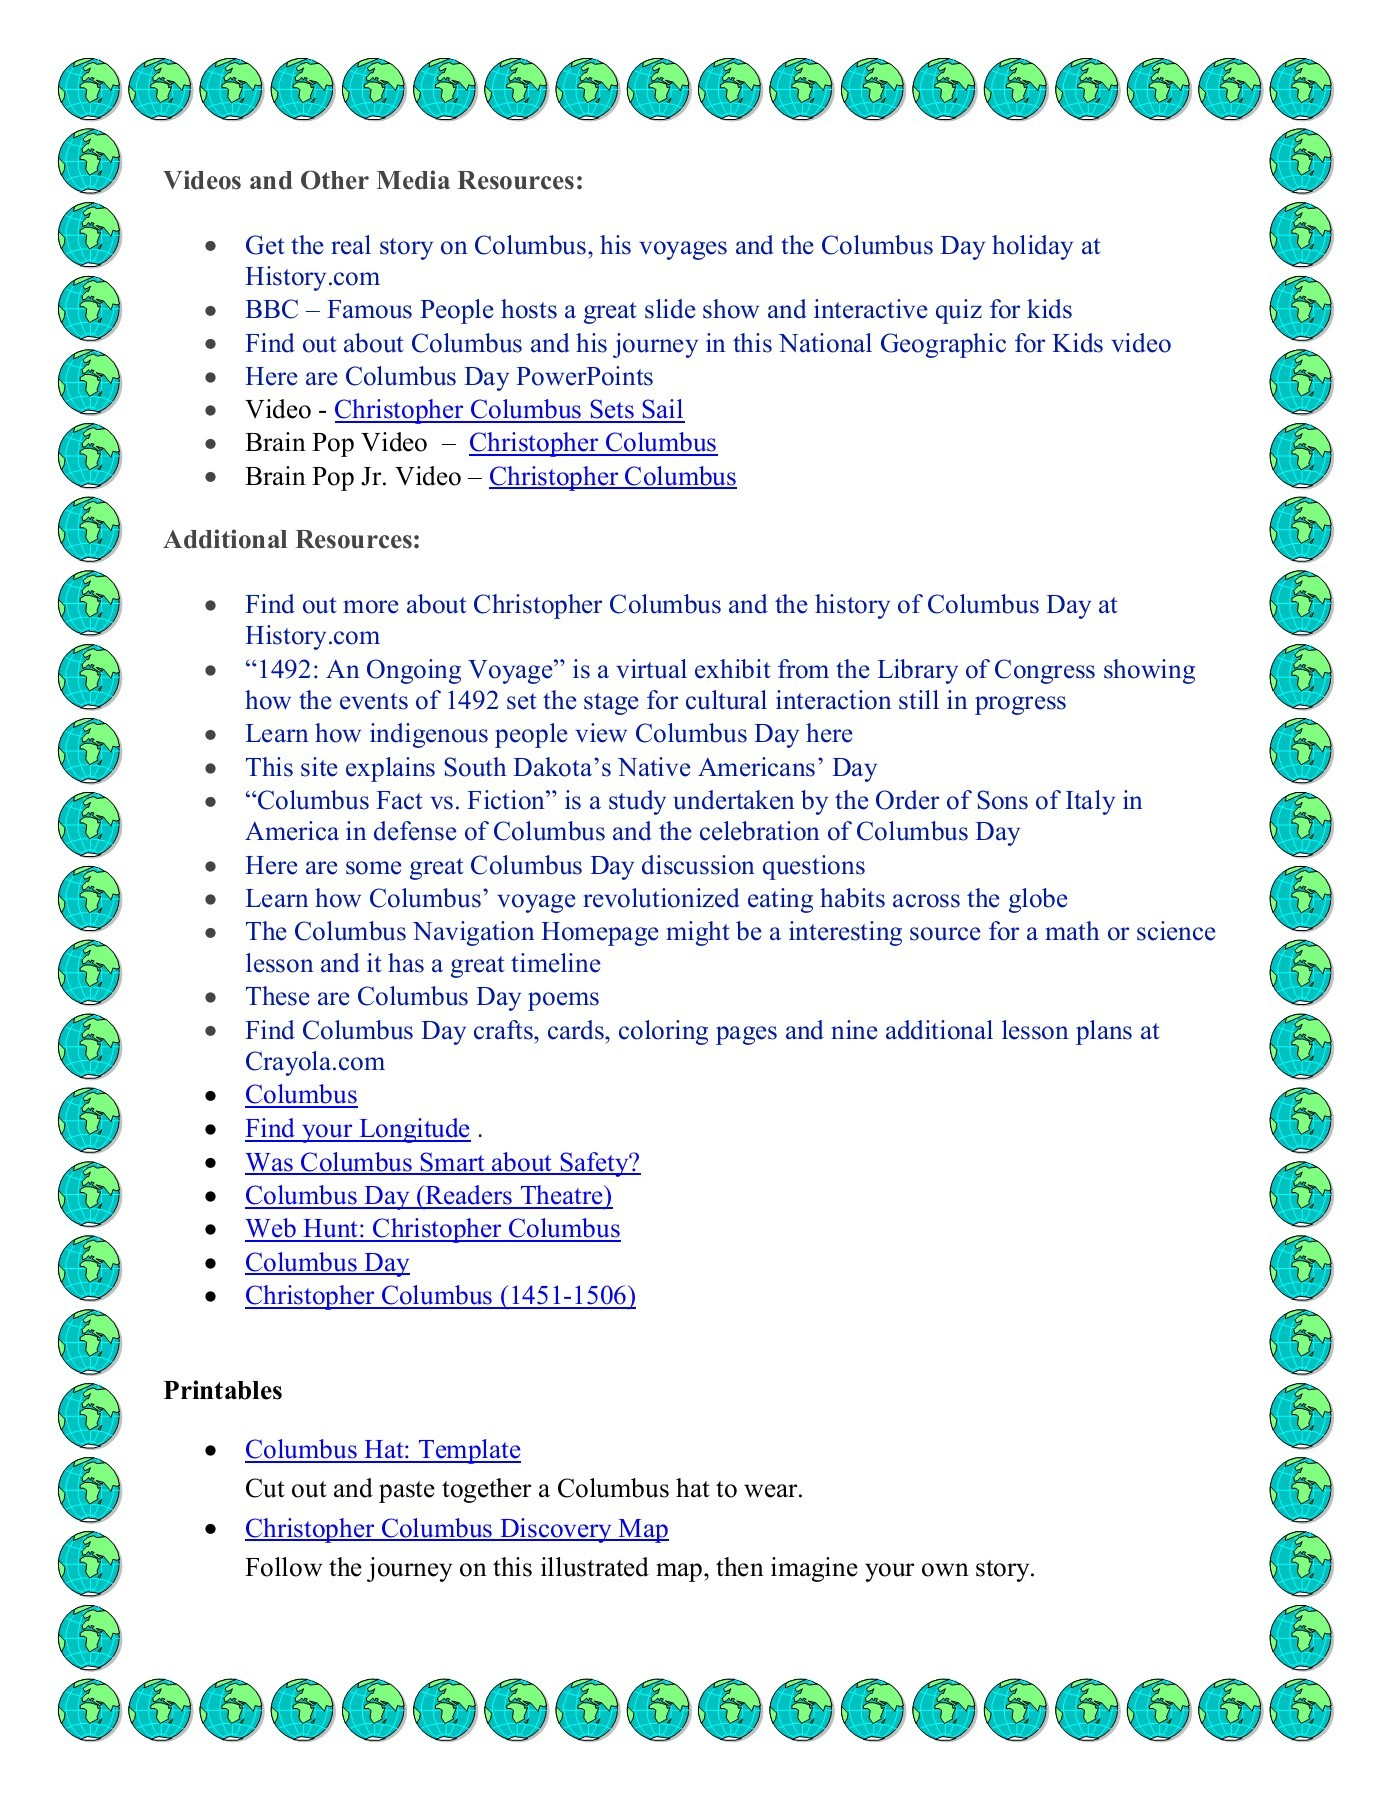 hight resolution of Columbus Day Elementary Resources Pages 1 - 3 - Flip PDF Download    FlipHTML5